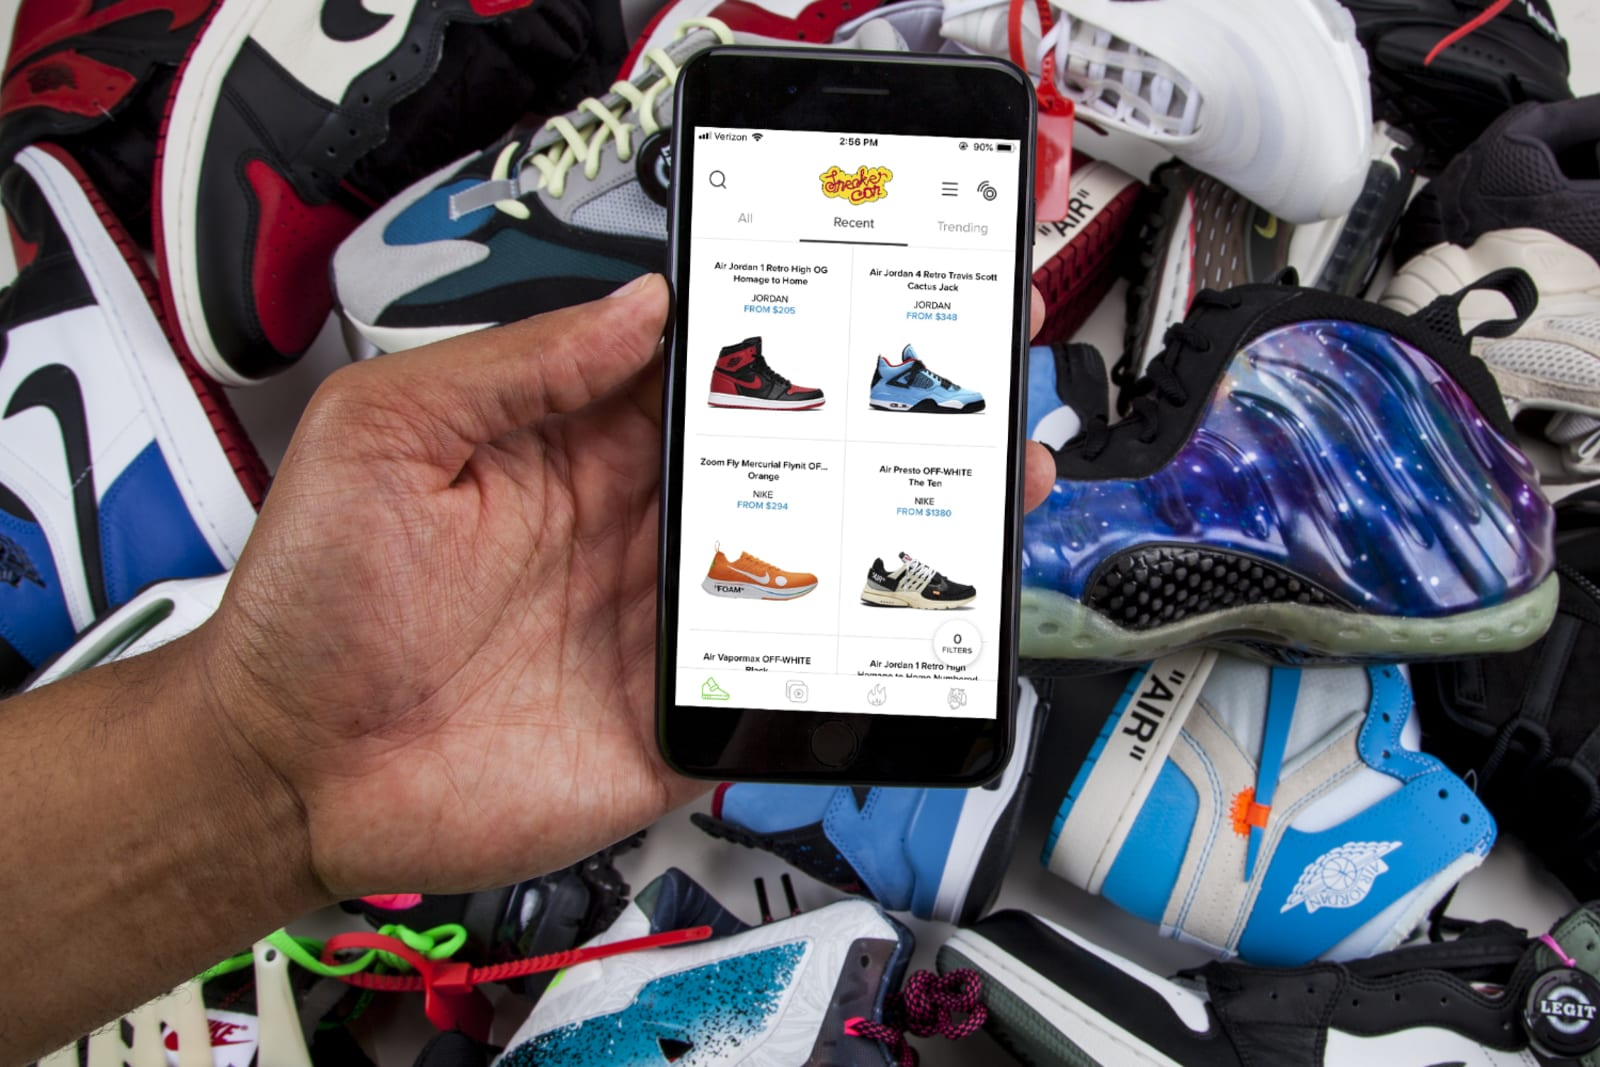 2c622b82 Sneaker Con is mostly known for its shoe conventions around the world, but  in 2018 the company launched an app designed to compete with StockX and  GOAT.